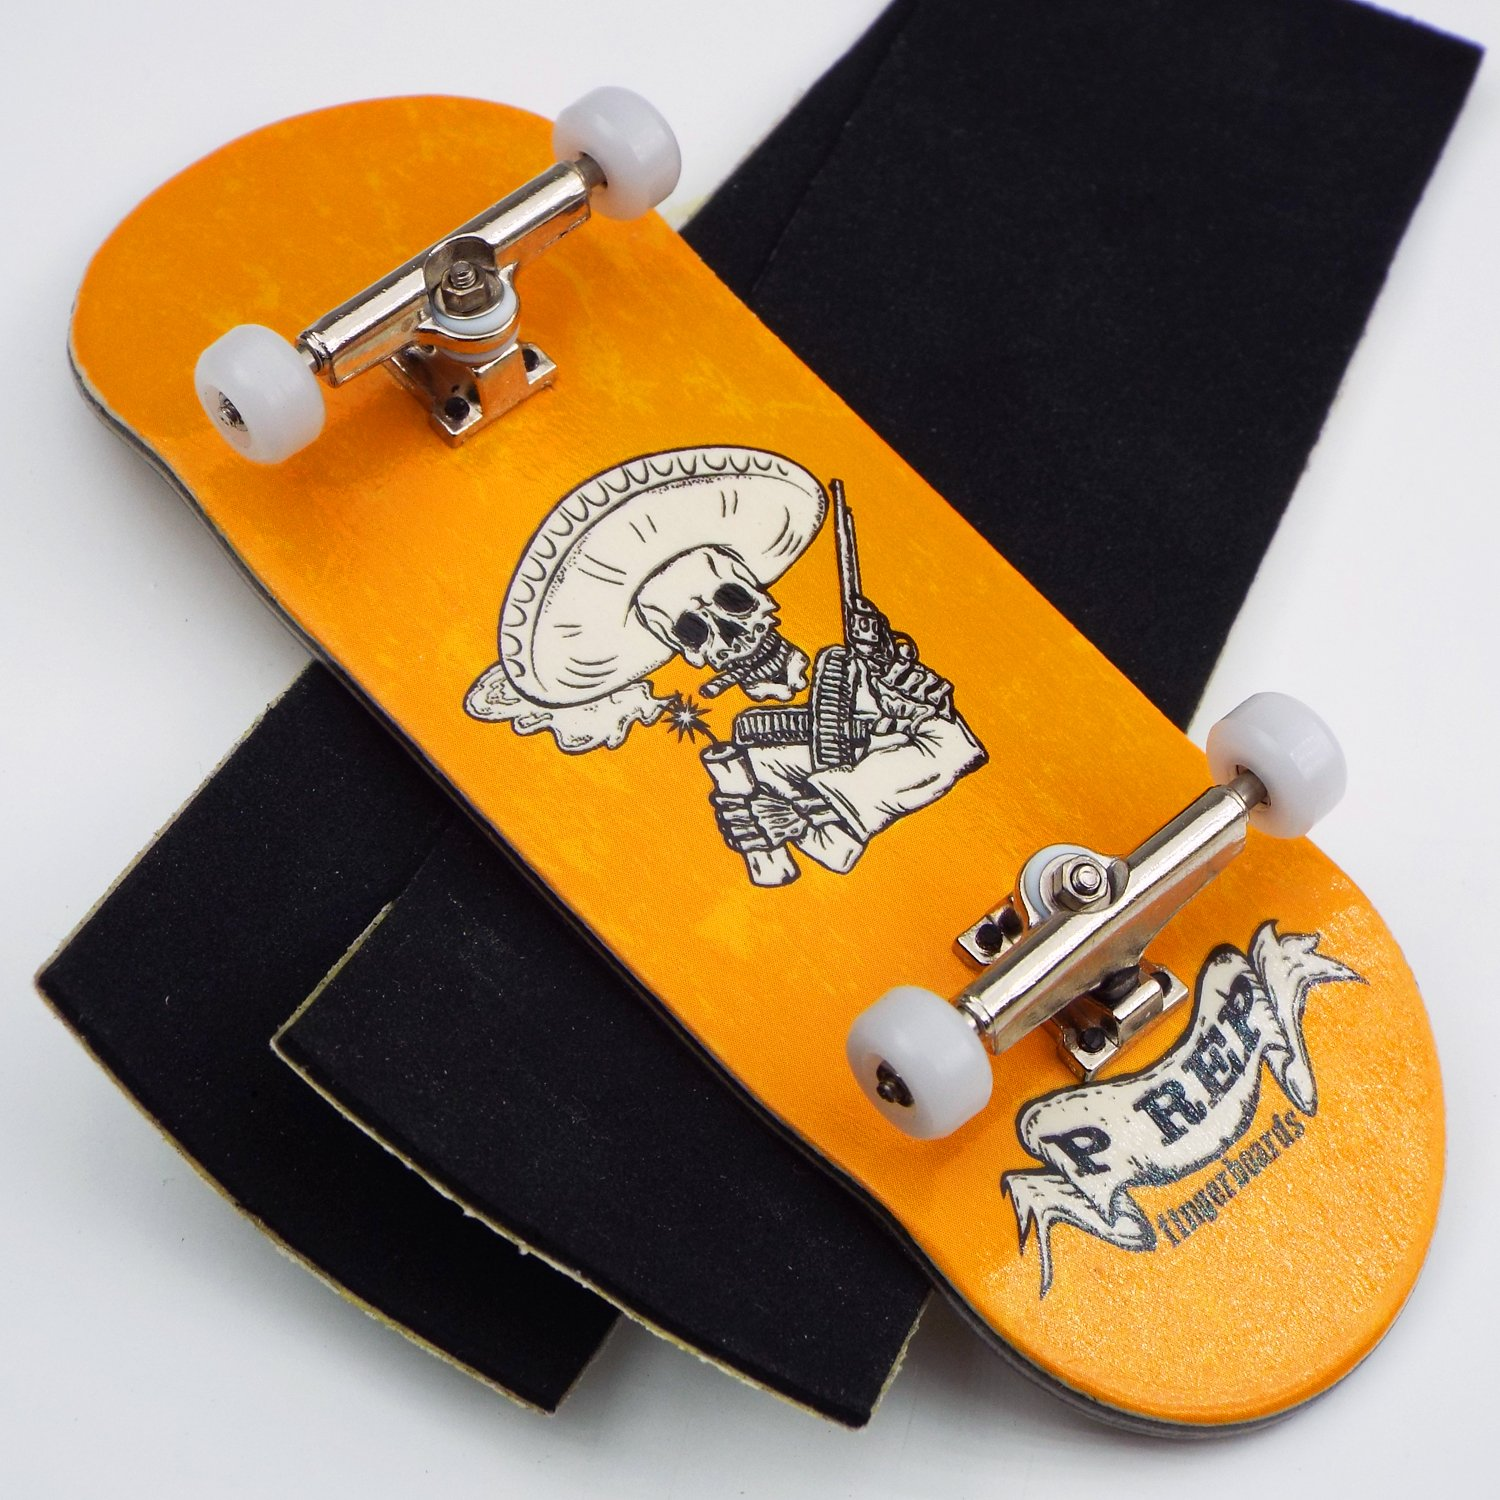 P-REP TUNED Complete Wooden Fingerboard 34mm x 100mm - Bandito by Peoples Republic